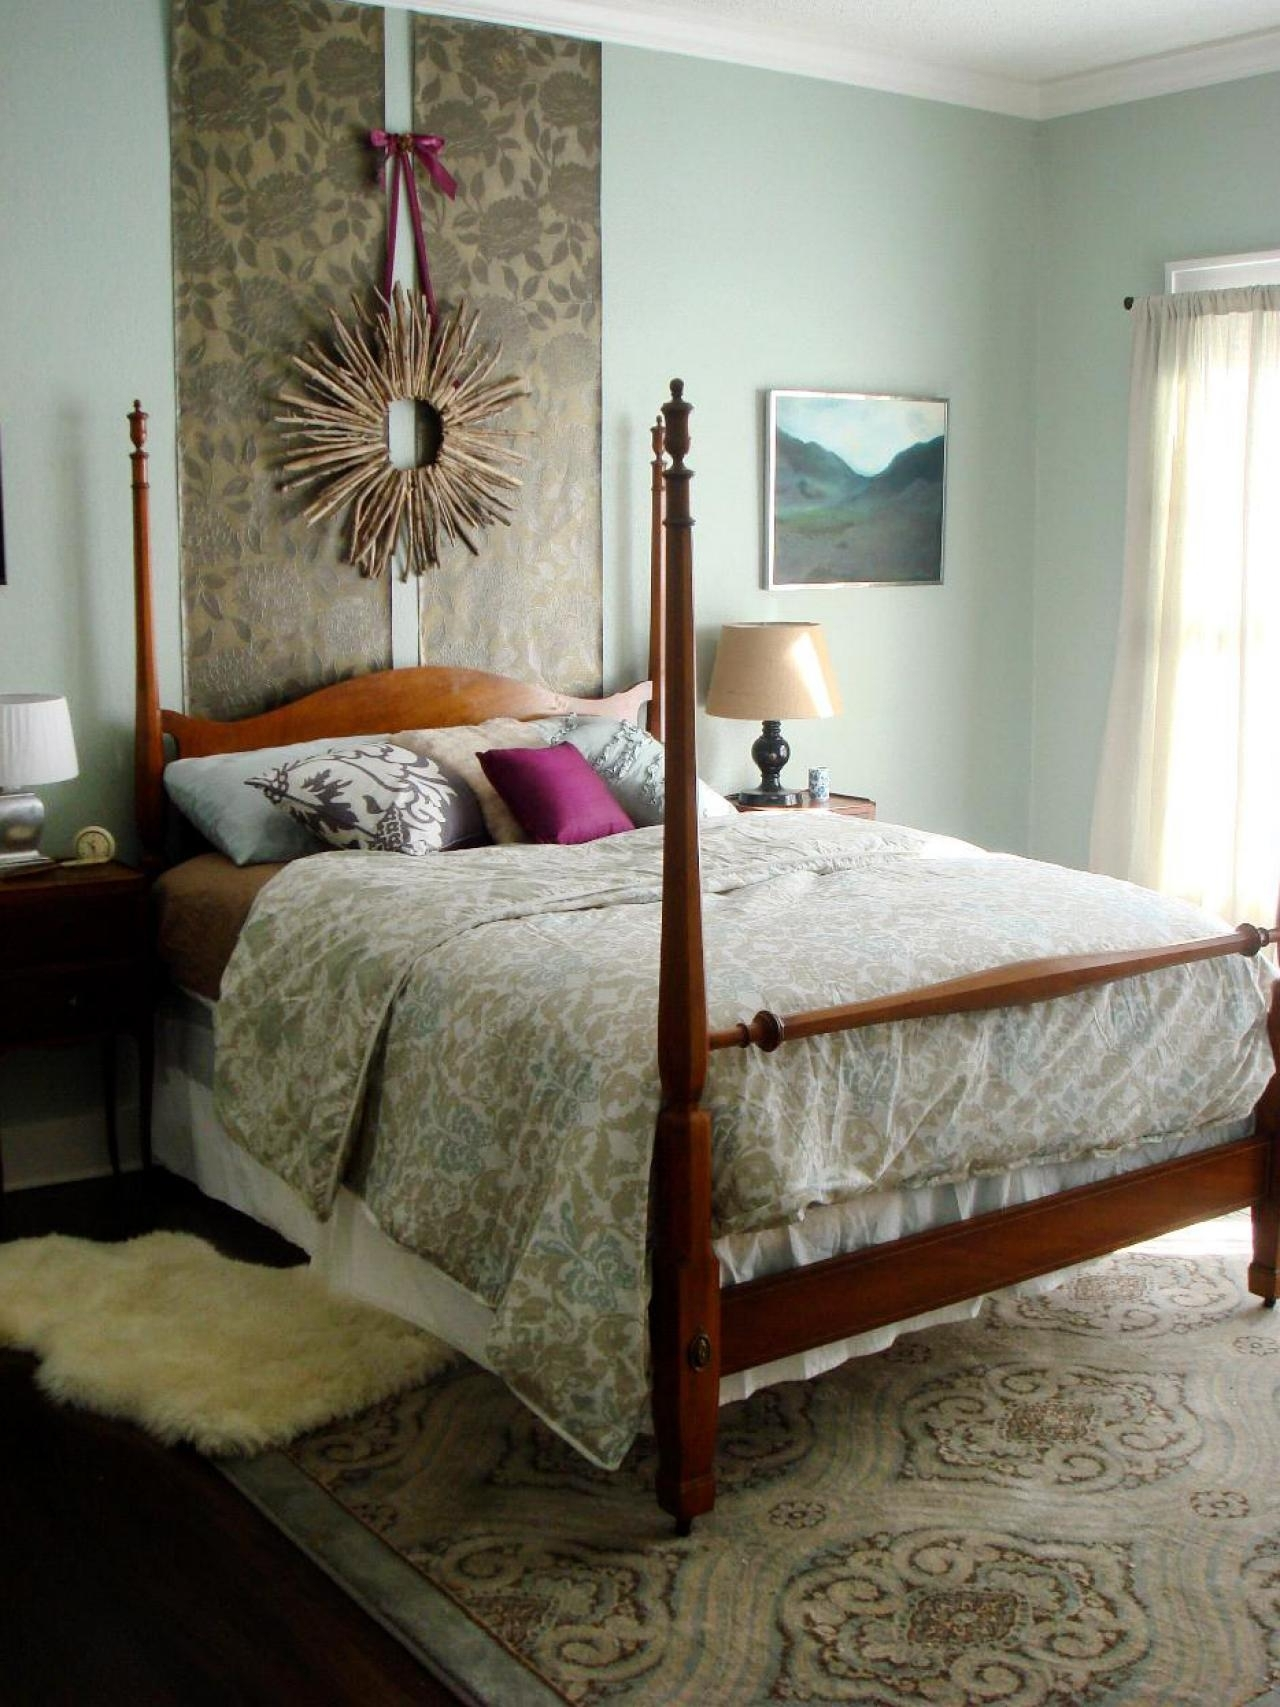 10 Attractive Do It Yourself Headboard Ideas %name 2021